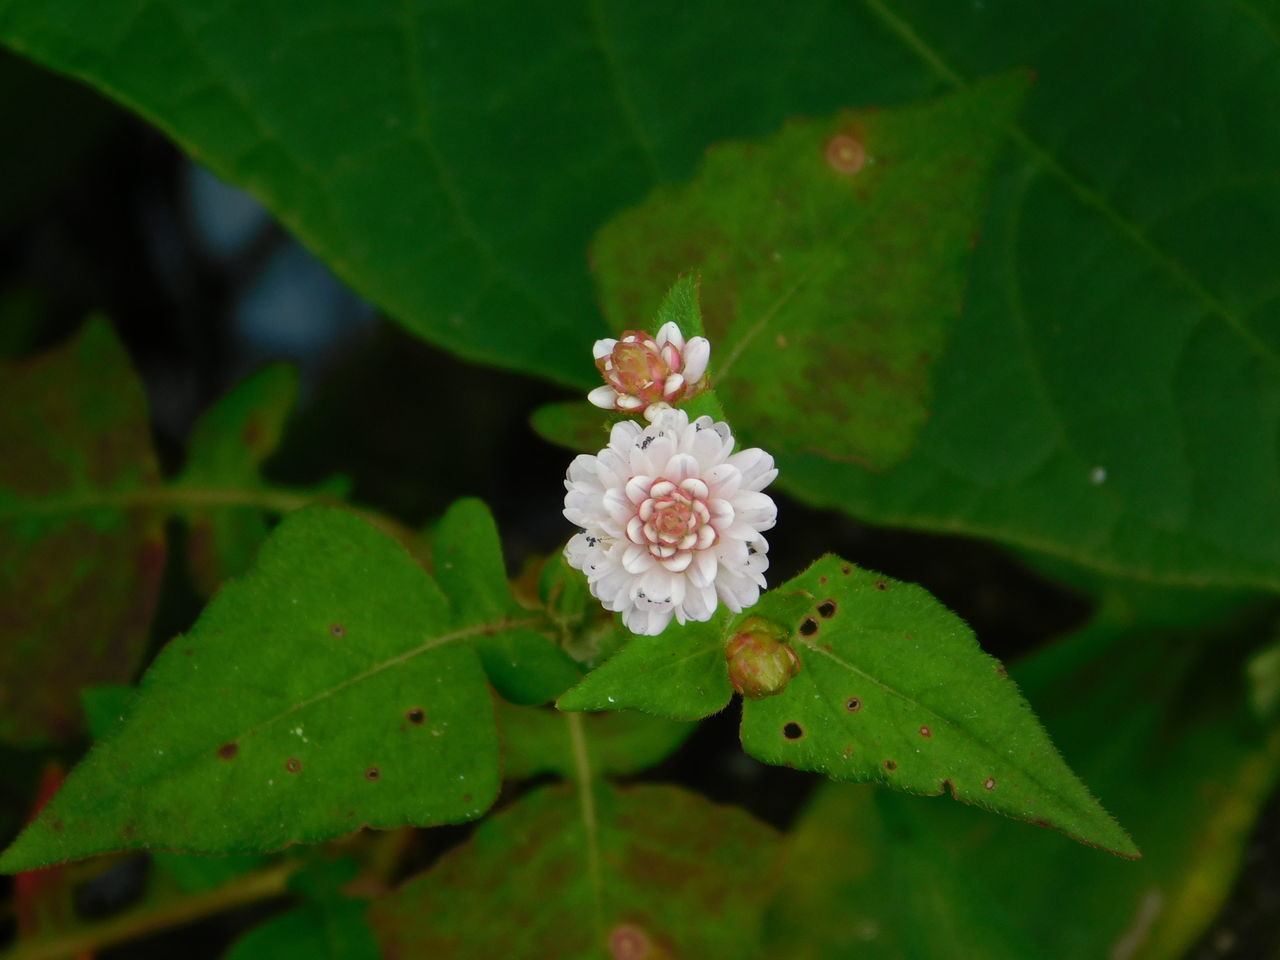 leaf, plant part, plant, flower, growth, beauty in nature, flowering plant, close-up, fragility, vulnerability, freshness, green color, nature, petal, inflorescence, flower head, water, no people, day, outdoors, pollen, leaves